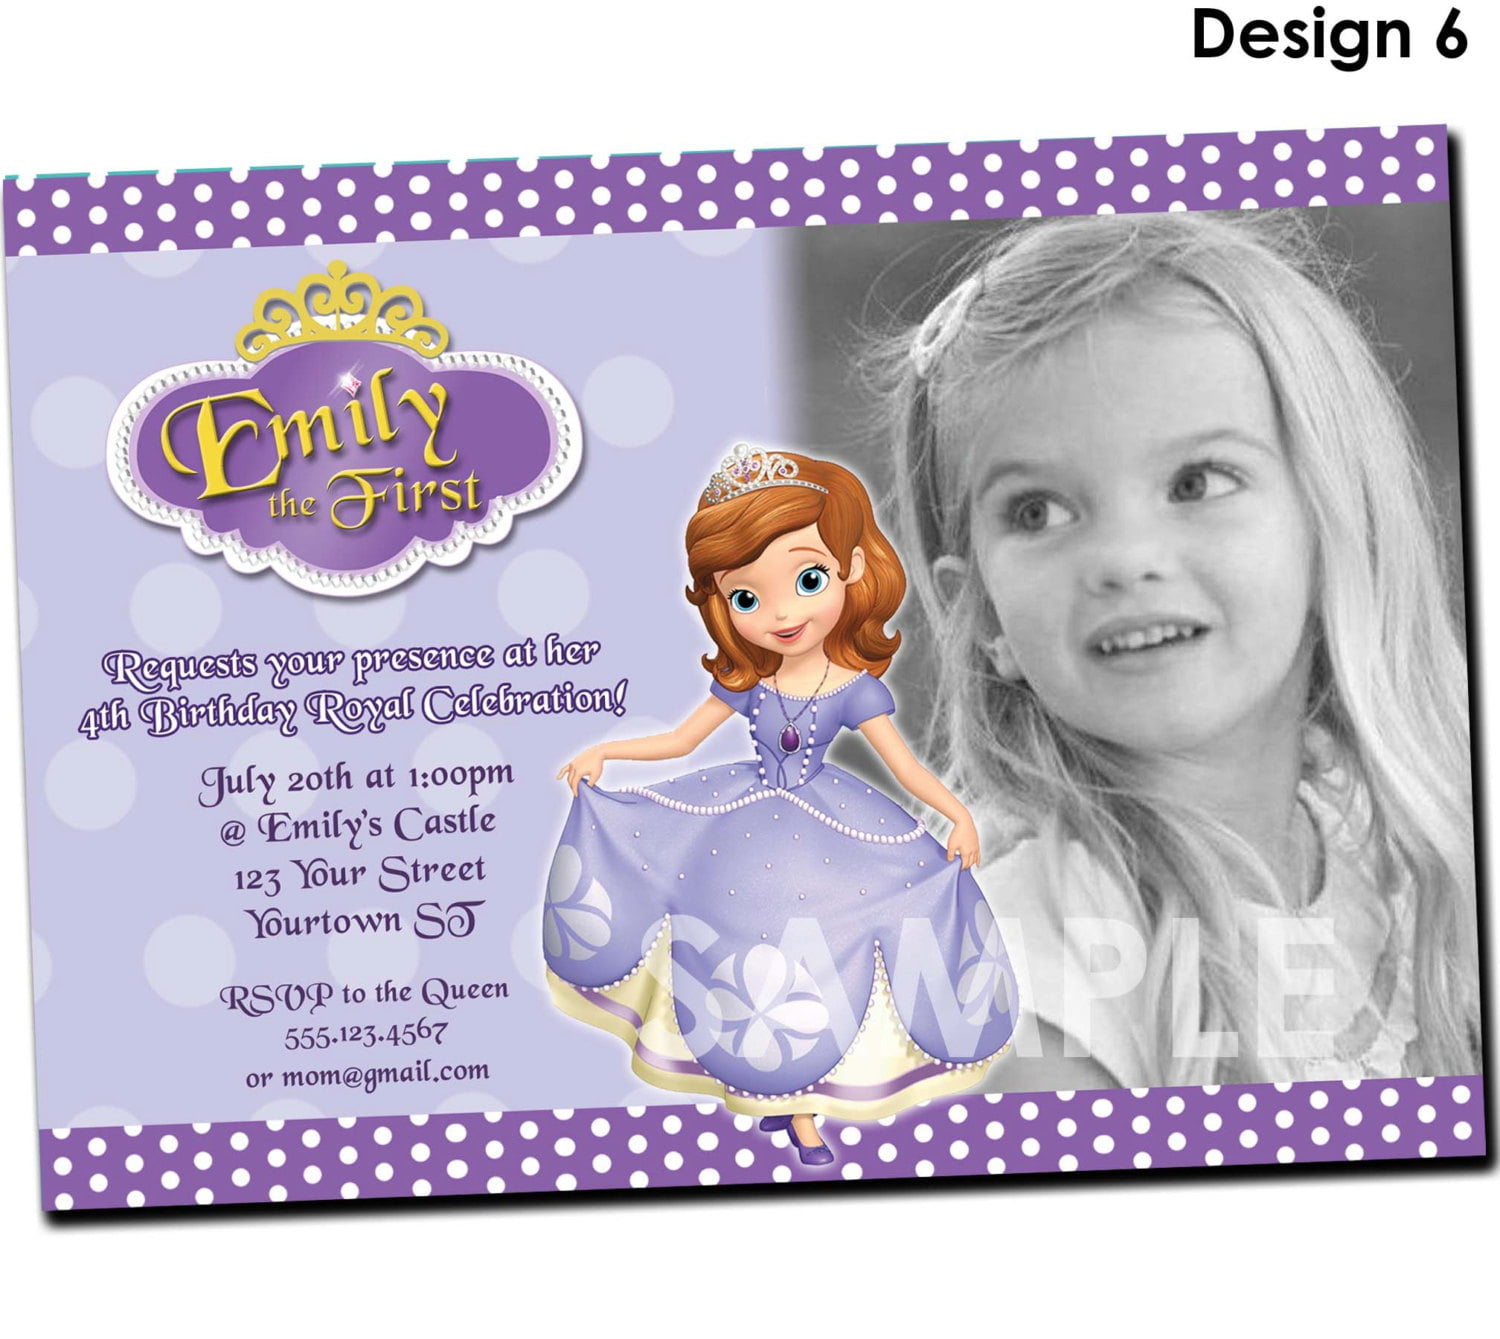 Princess sofia birthday invitations ideas bagvania free 4th princess sofia birthday invitations stopboris Images